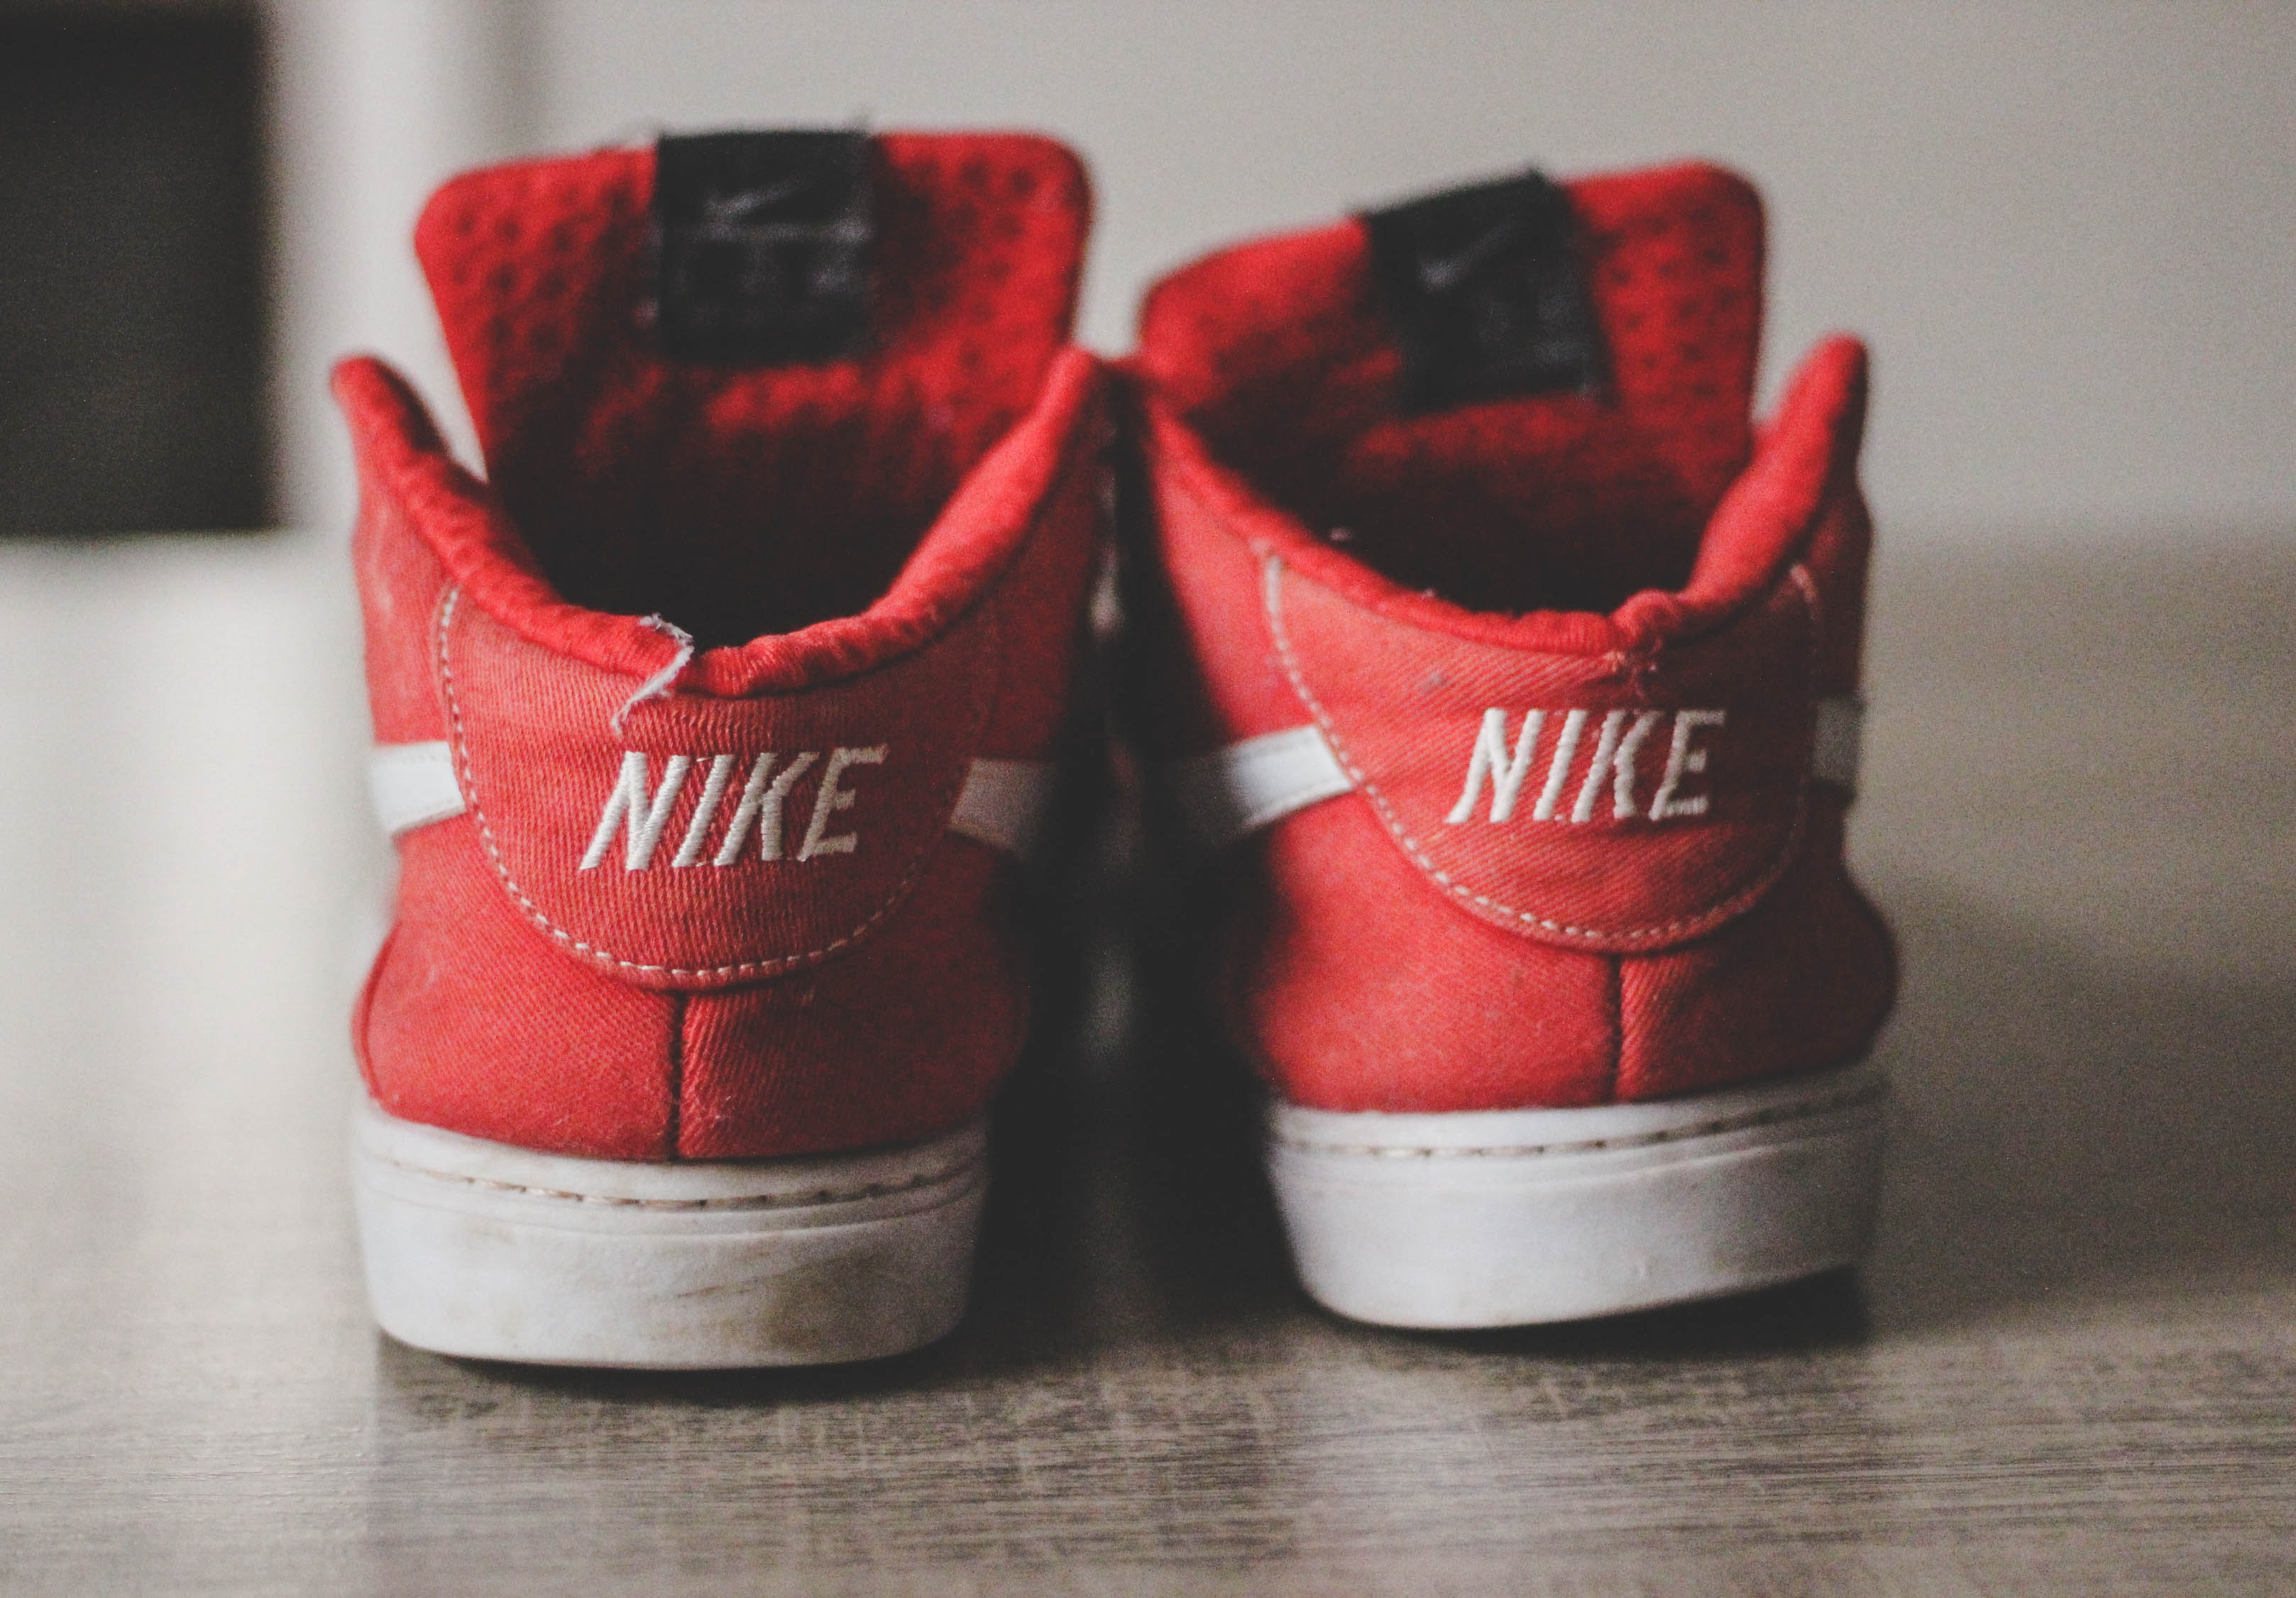 closeup photography of pair of red-and-white Nike low-top shoes